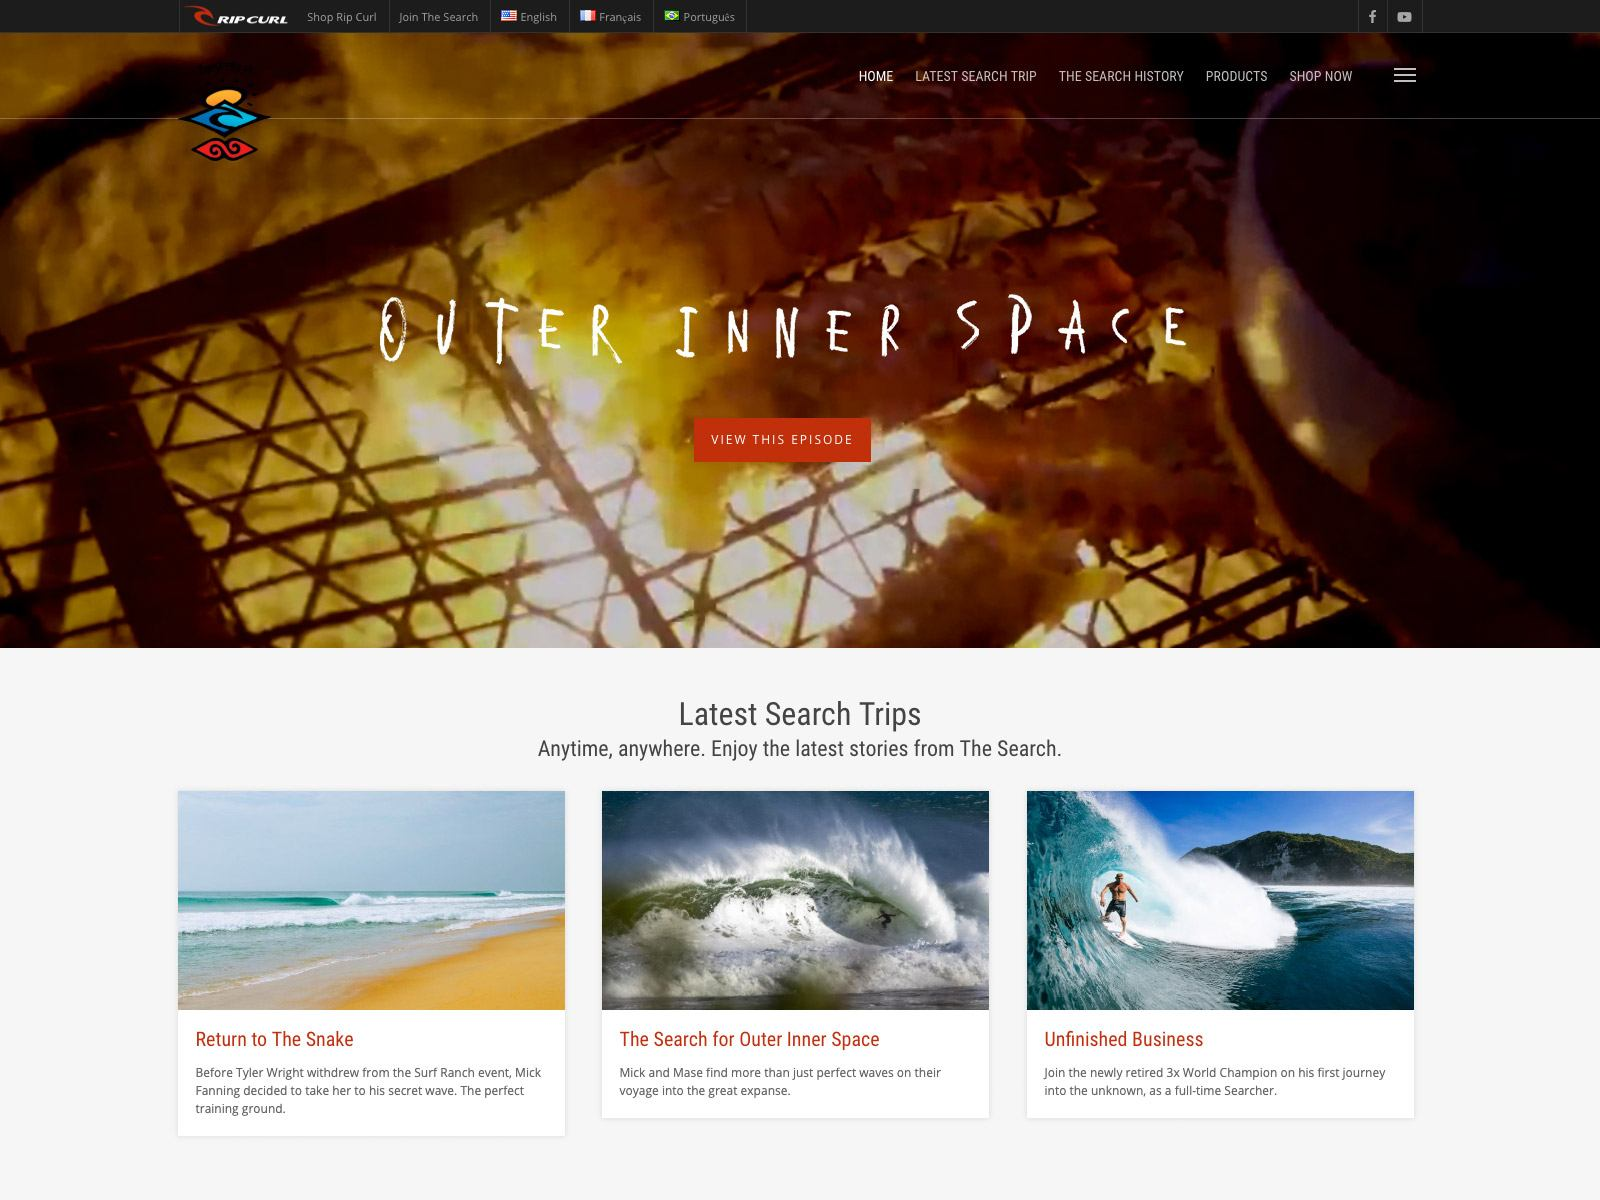 The Search, a stellar digital experience for Rip Curl customers